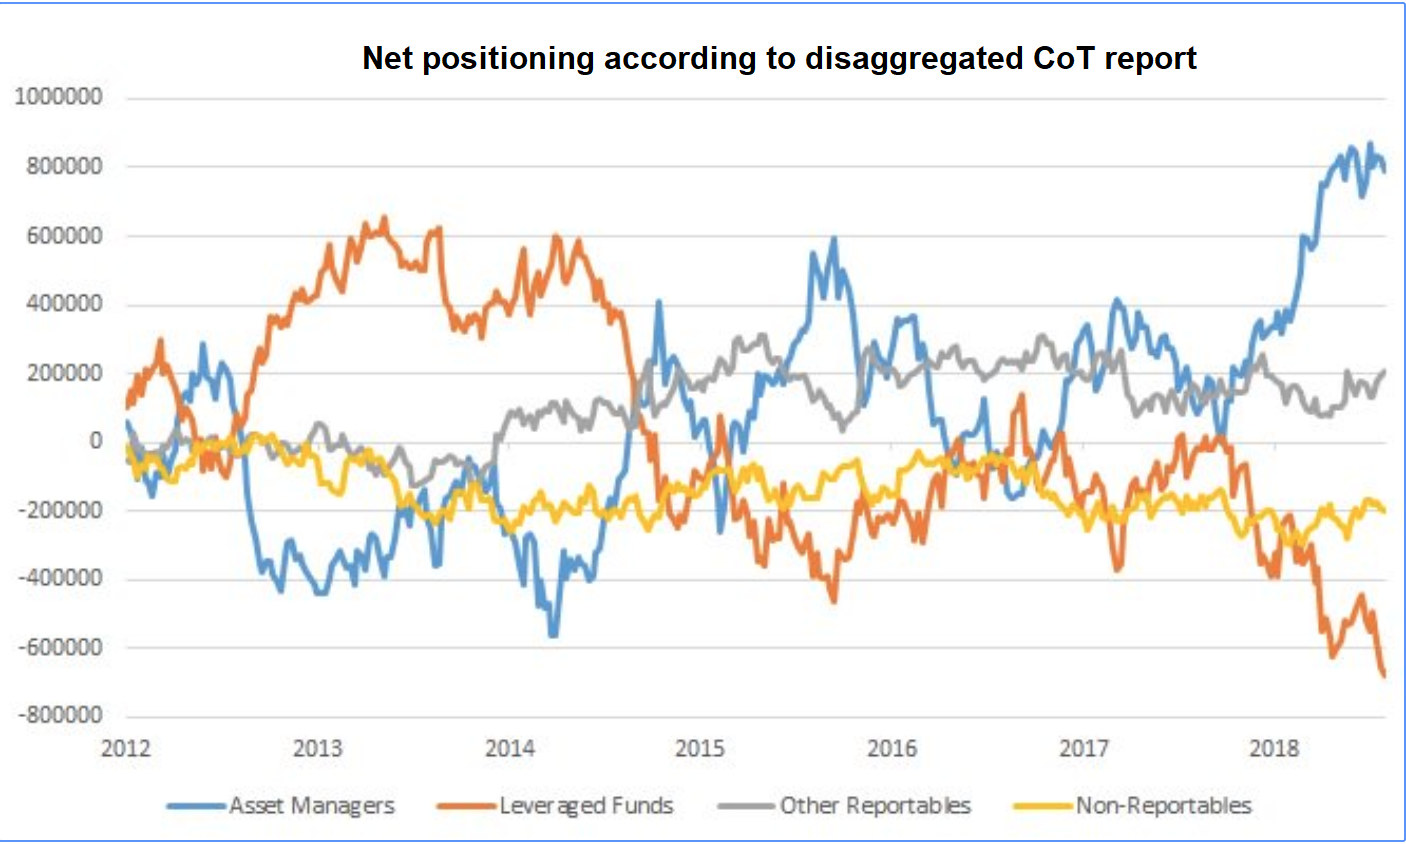 Disaggregated Positions, 2012 - 2018